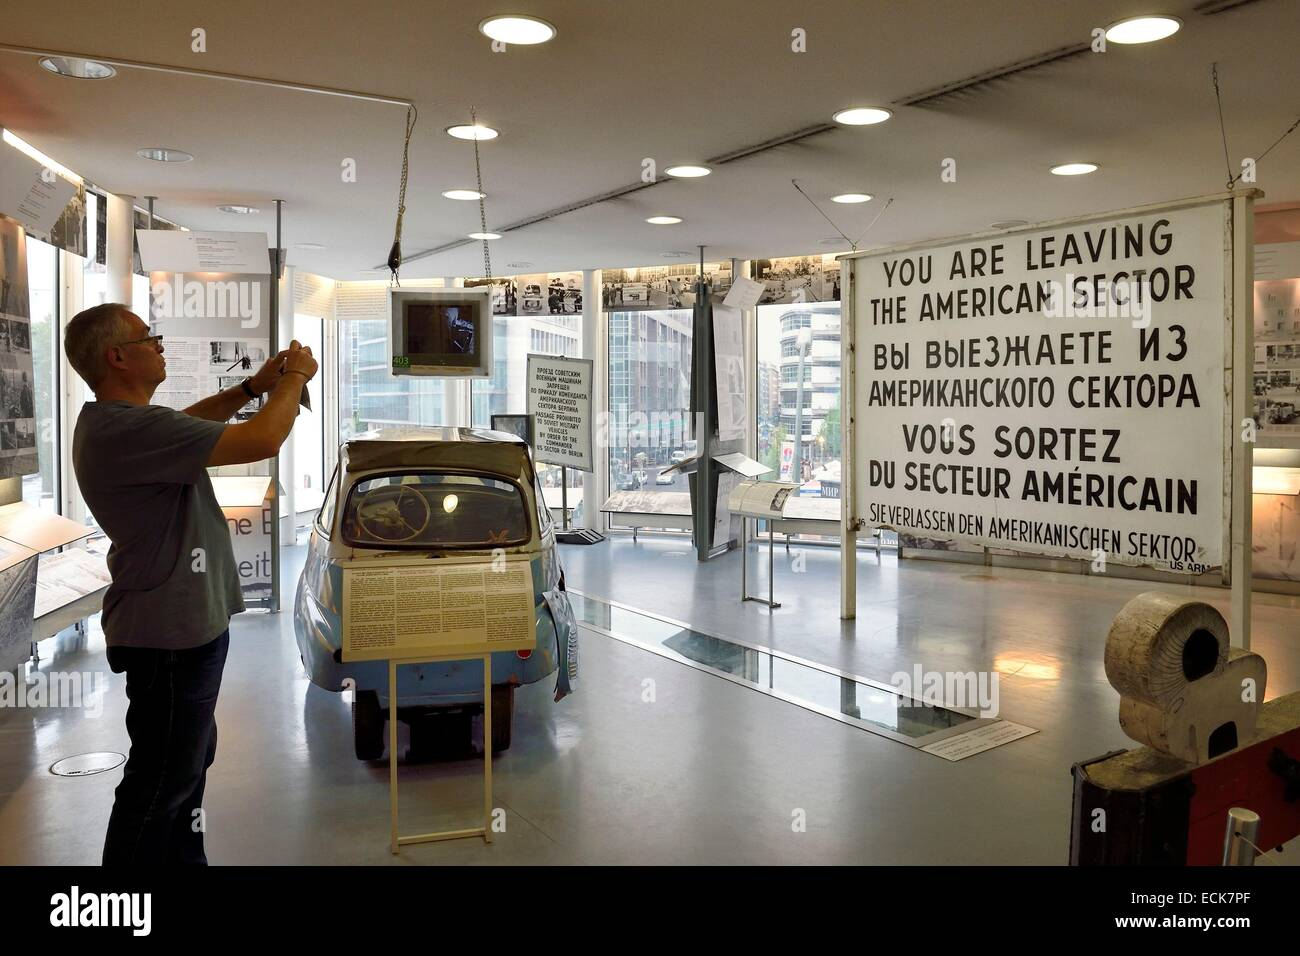 Germany, Berlin, MusΘe du Checkpoint Charlie (Haus am Checkpoint Charlie ou Mauermuseum) - Stock Image